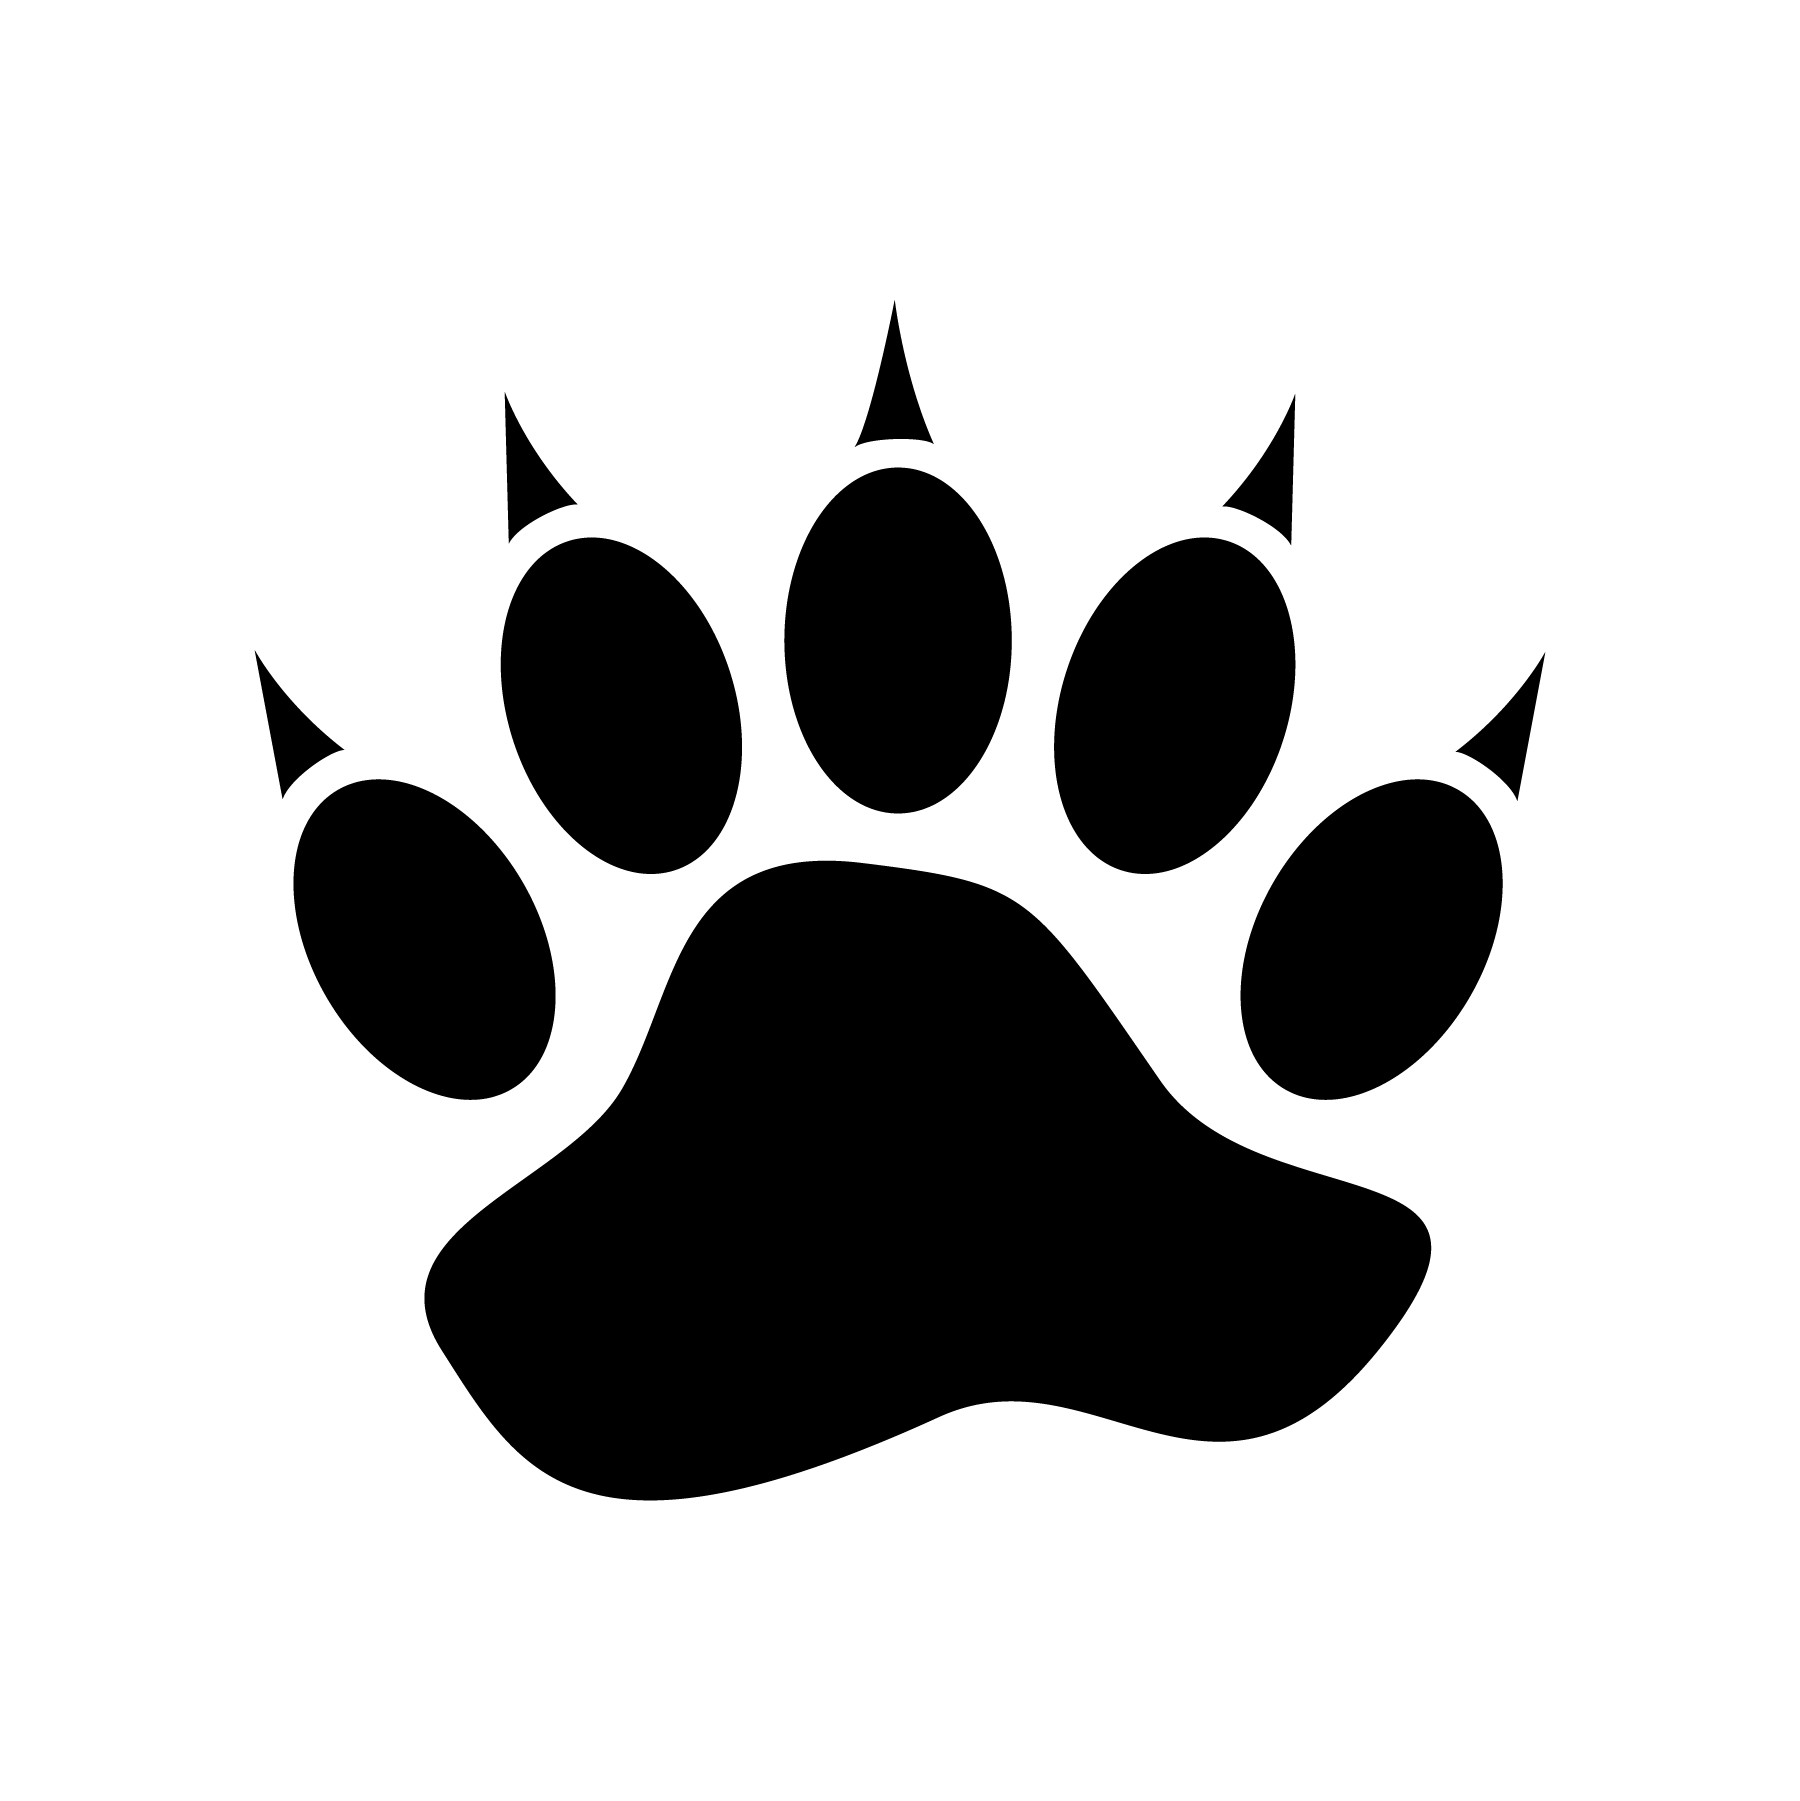 Bear Paw Print Icons Jessicabarrondesigns Design Graphicdesign Icon Icondesign Adobeillustrator Ai Fo Bear Paw Print Stencil Patterns Art Day